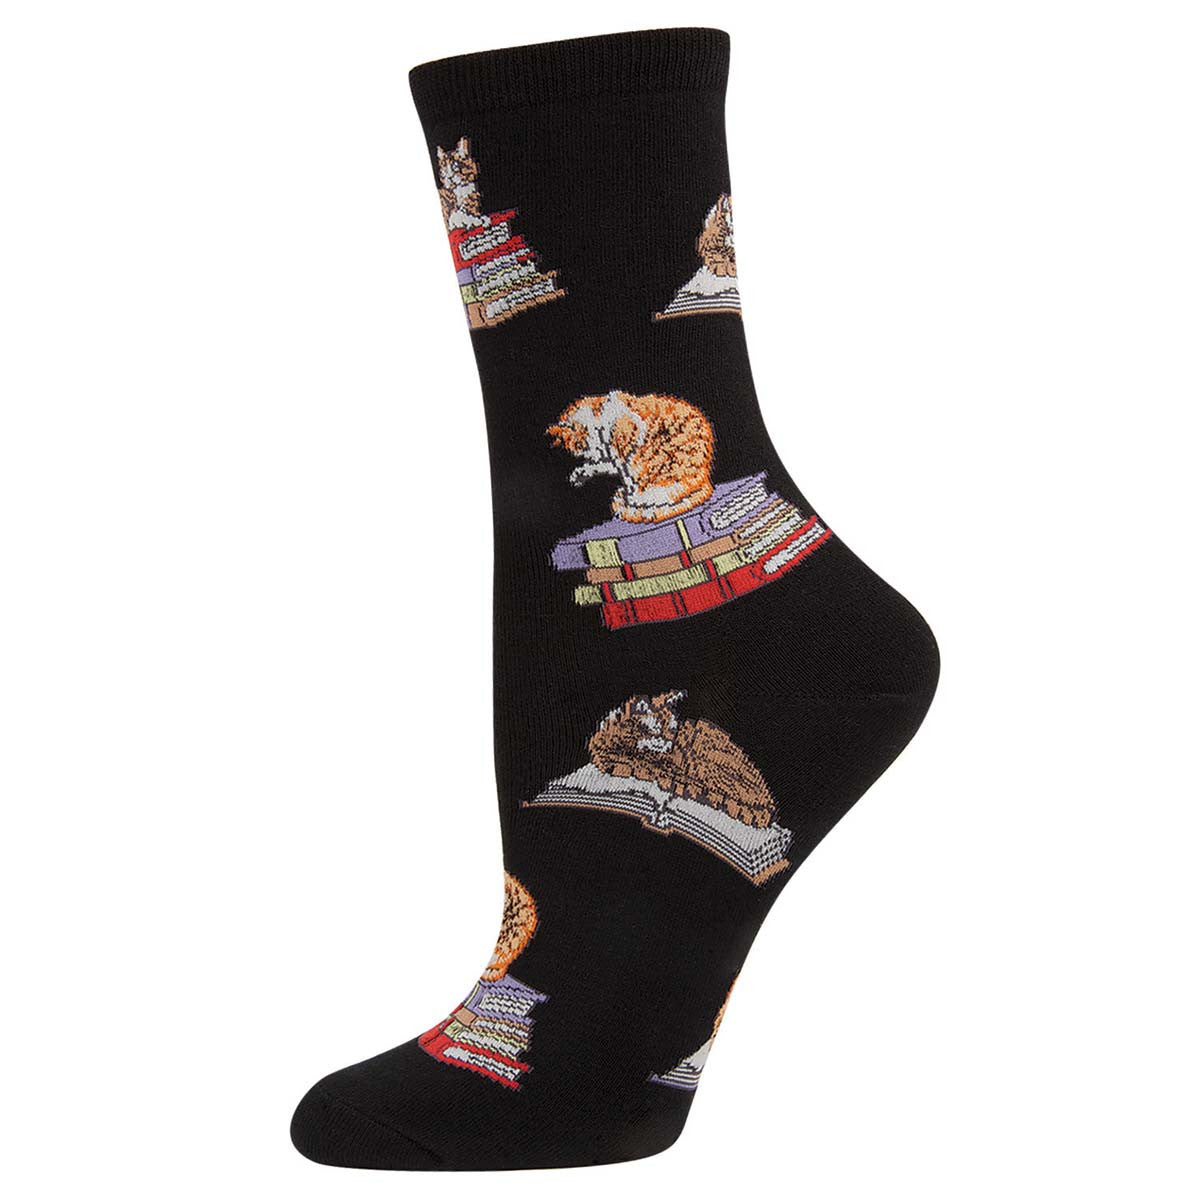 Cat on a Book Socks